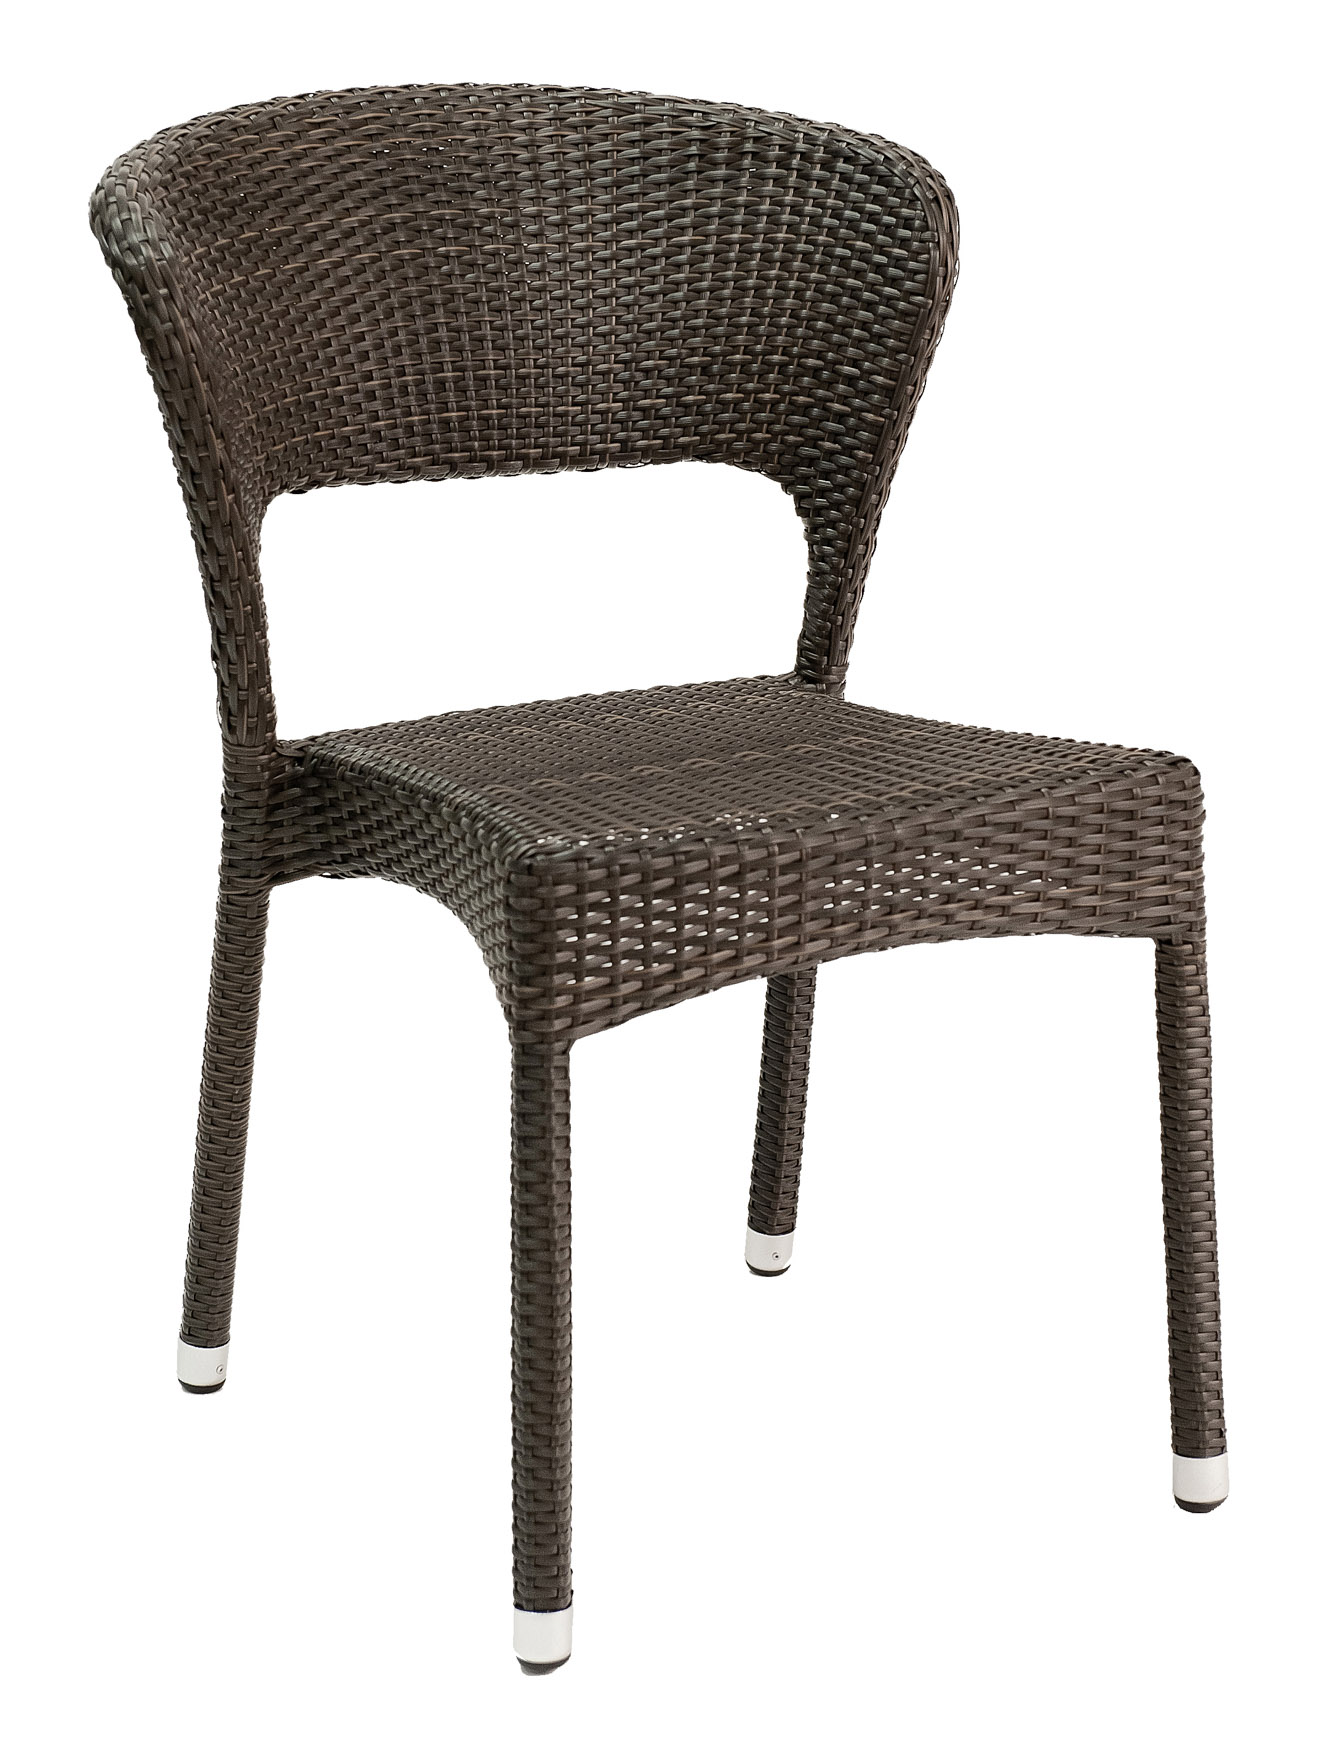 Biscayne Bay Open Back Wicker Side Chair